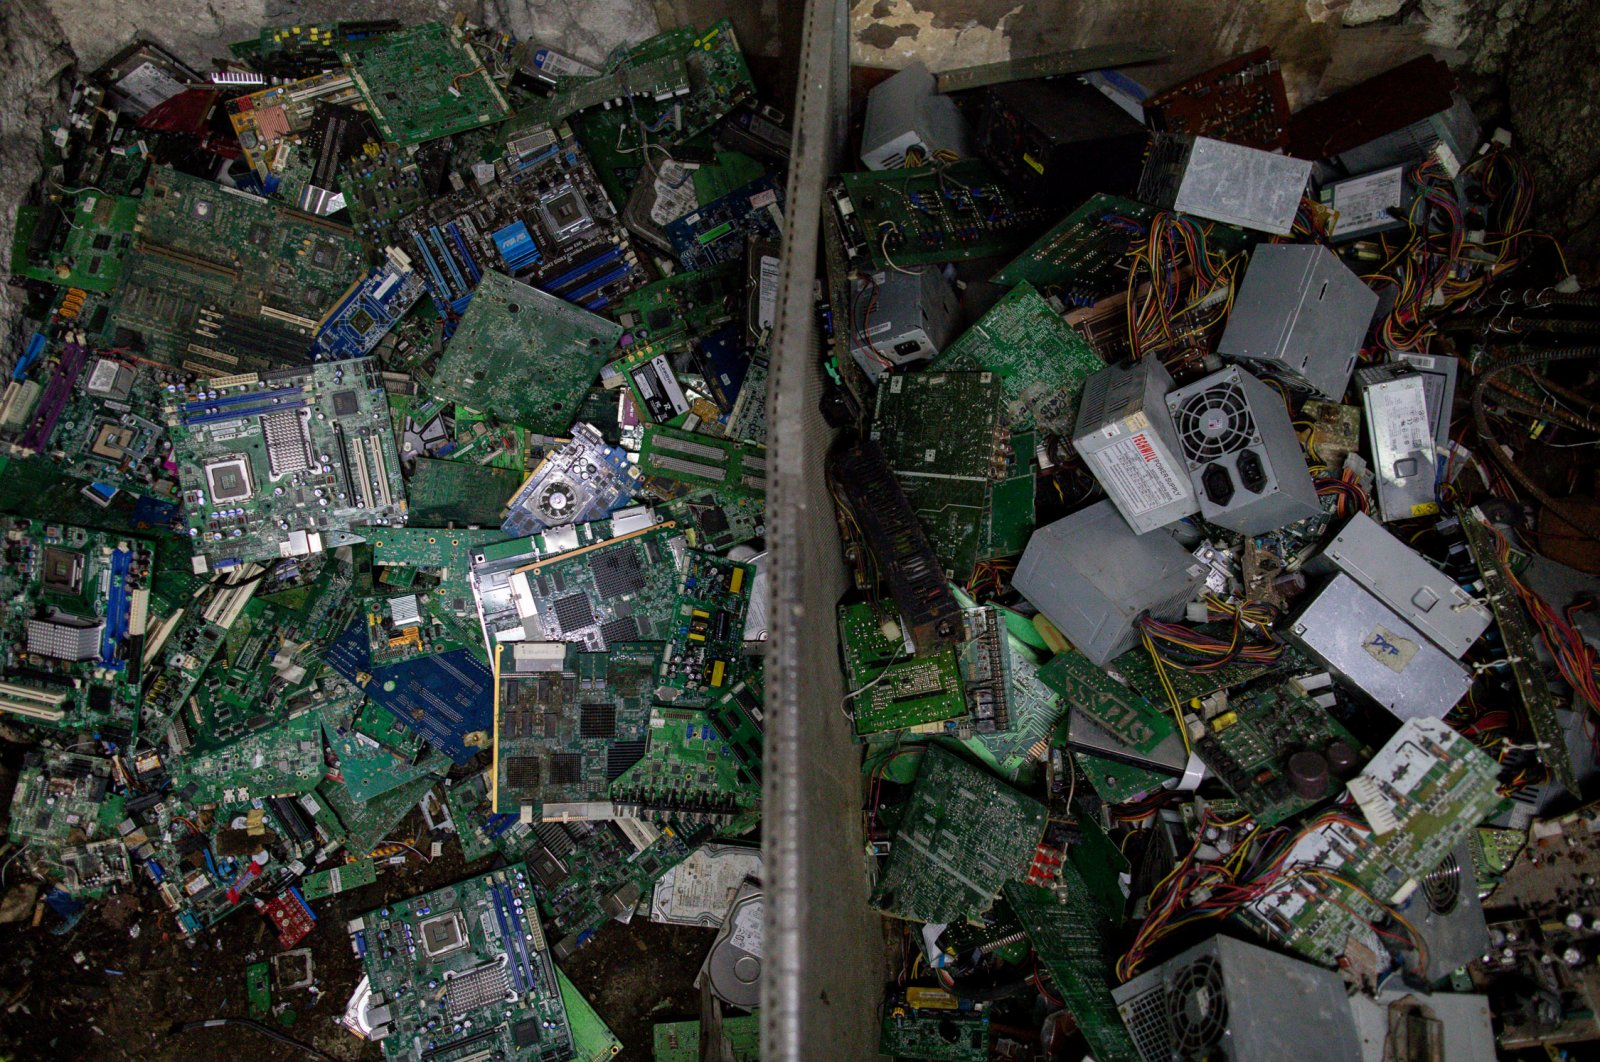 Electronic waste or e-waste from computers is pictured in a junk shop in Makati City, Metro Manila, Philippines, July 2, 2020. (Reuters Photo)